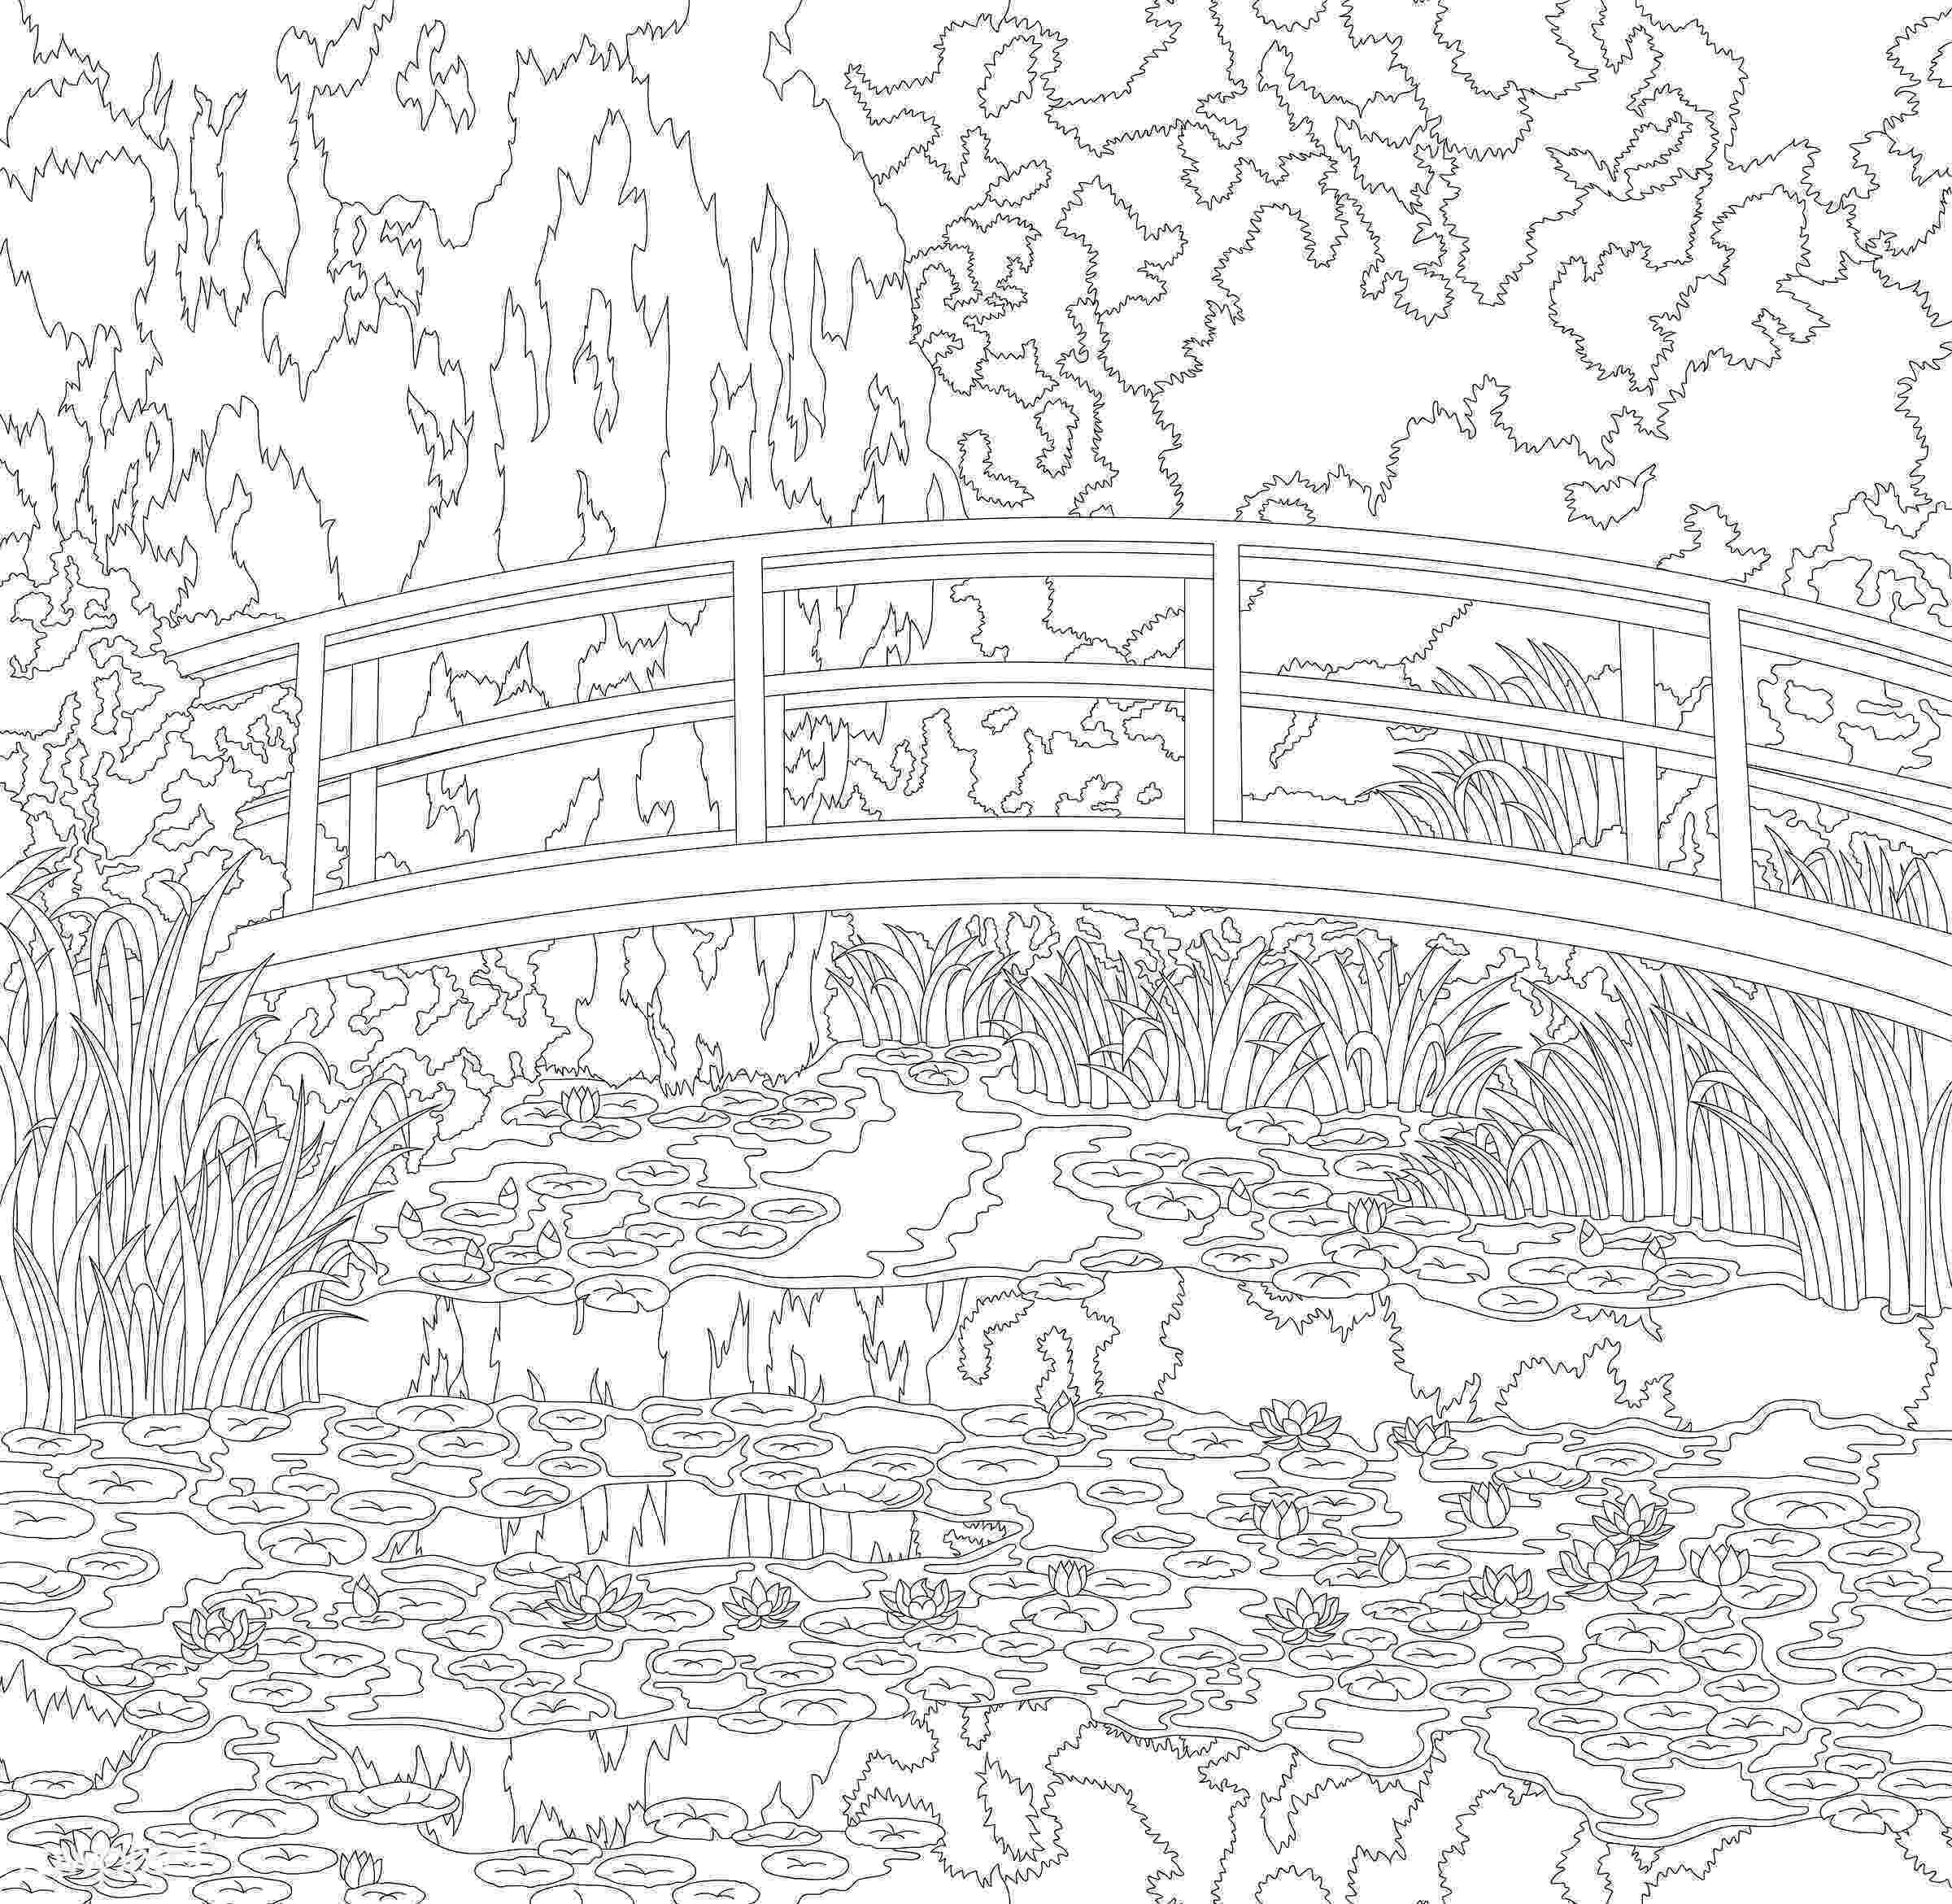 monet colouring pages the water lily pond 1899 by claude monet adult coloring colouring monet pages